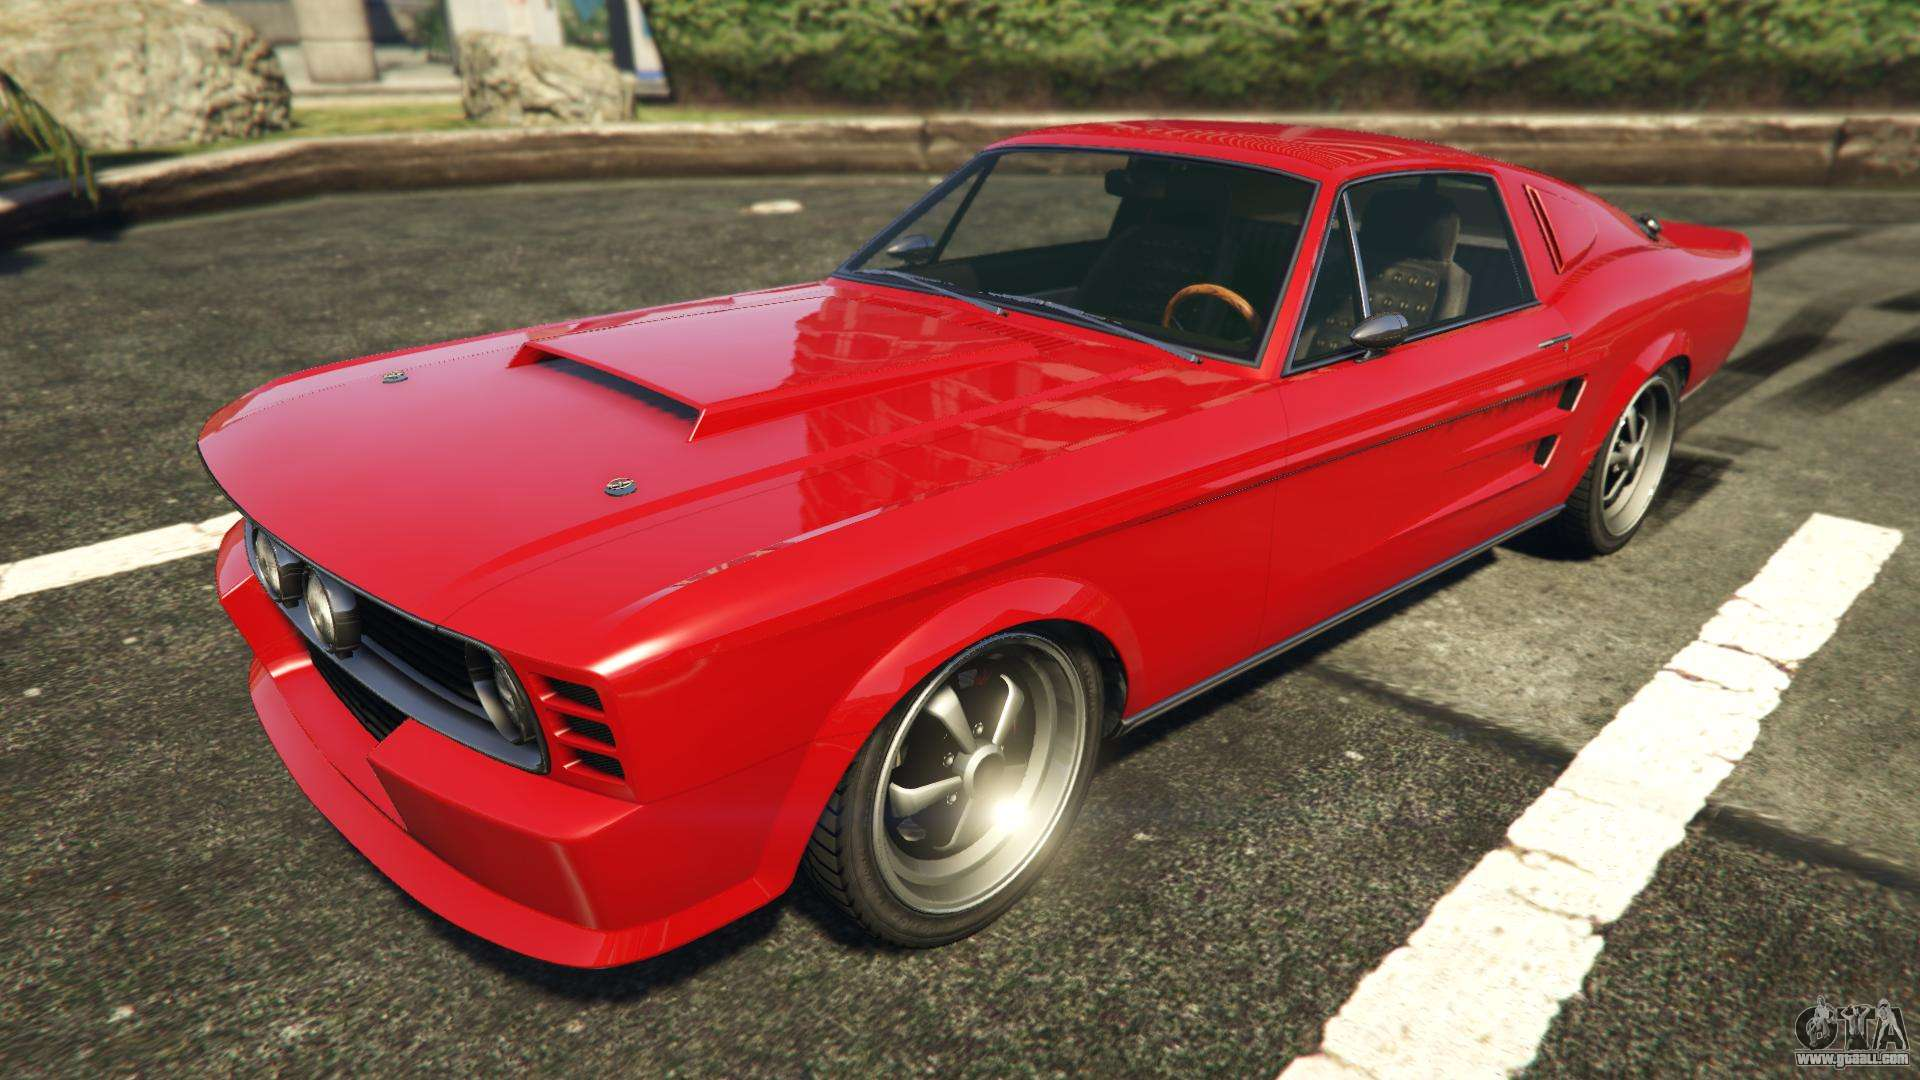 GTA Online Vapid Ellie